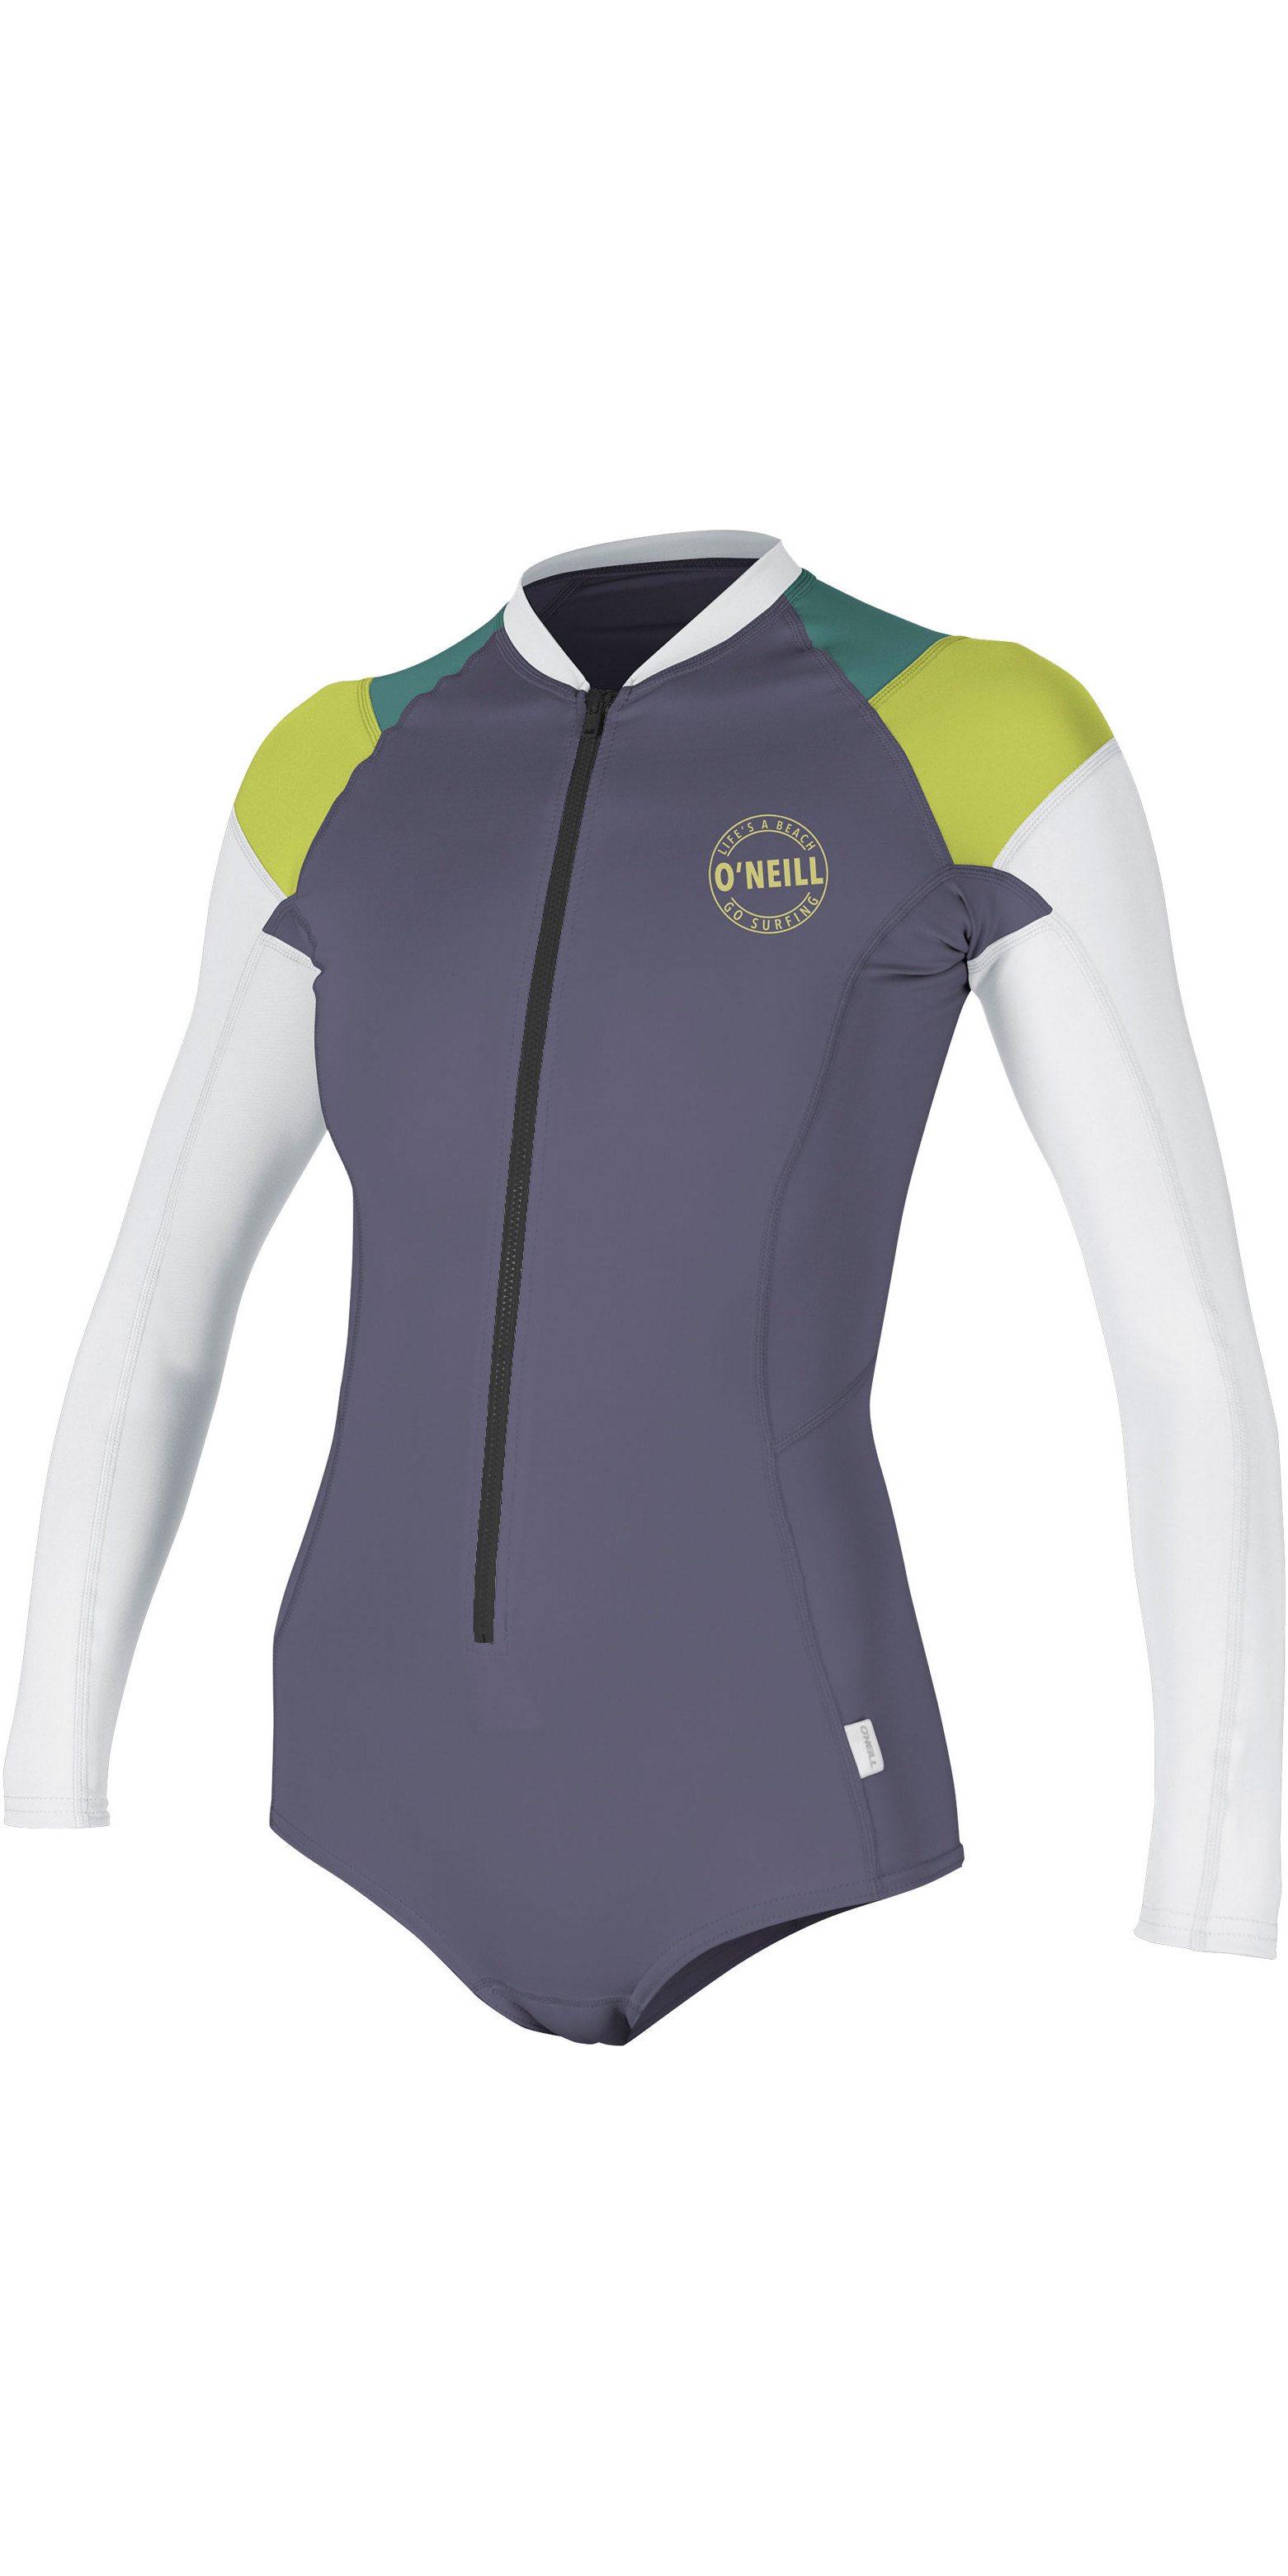 2019 O'Neill Womens Full Zip Long Sleeve Surf Suit Dusk / Lime 5312S